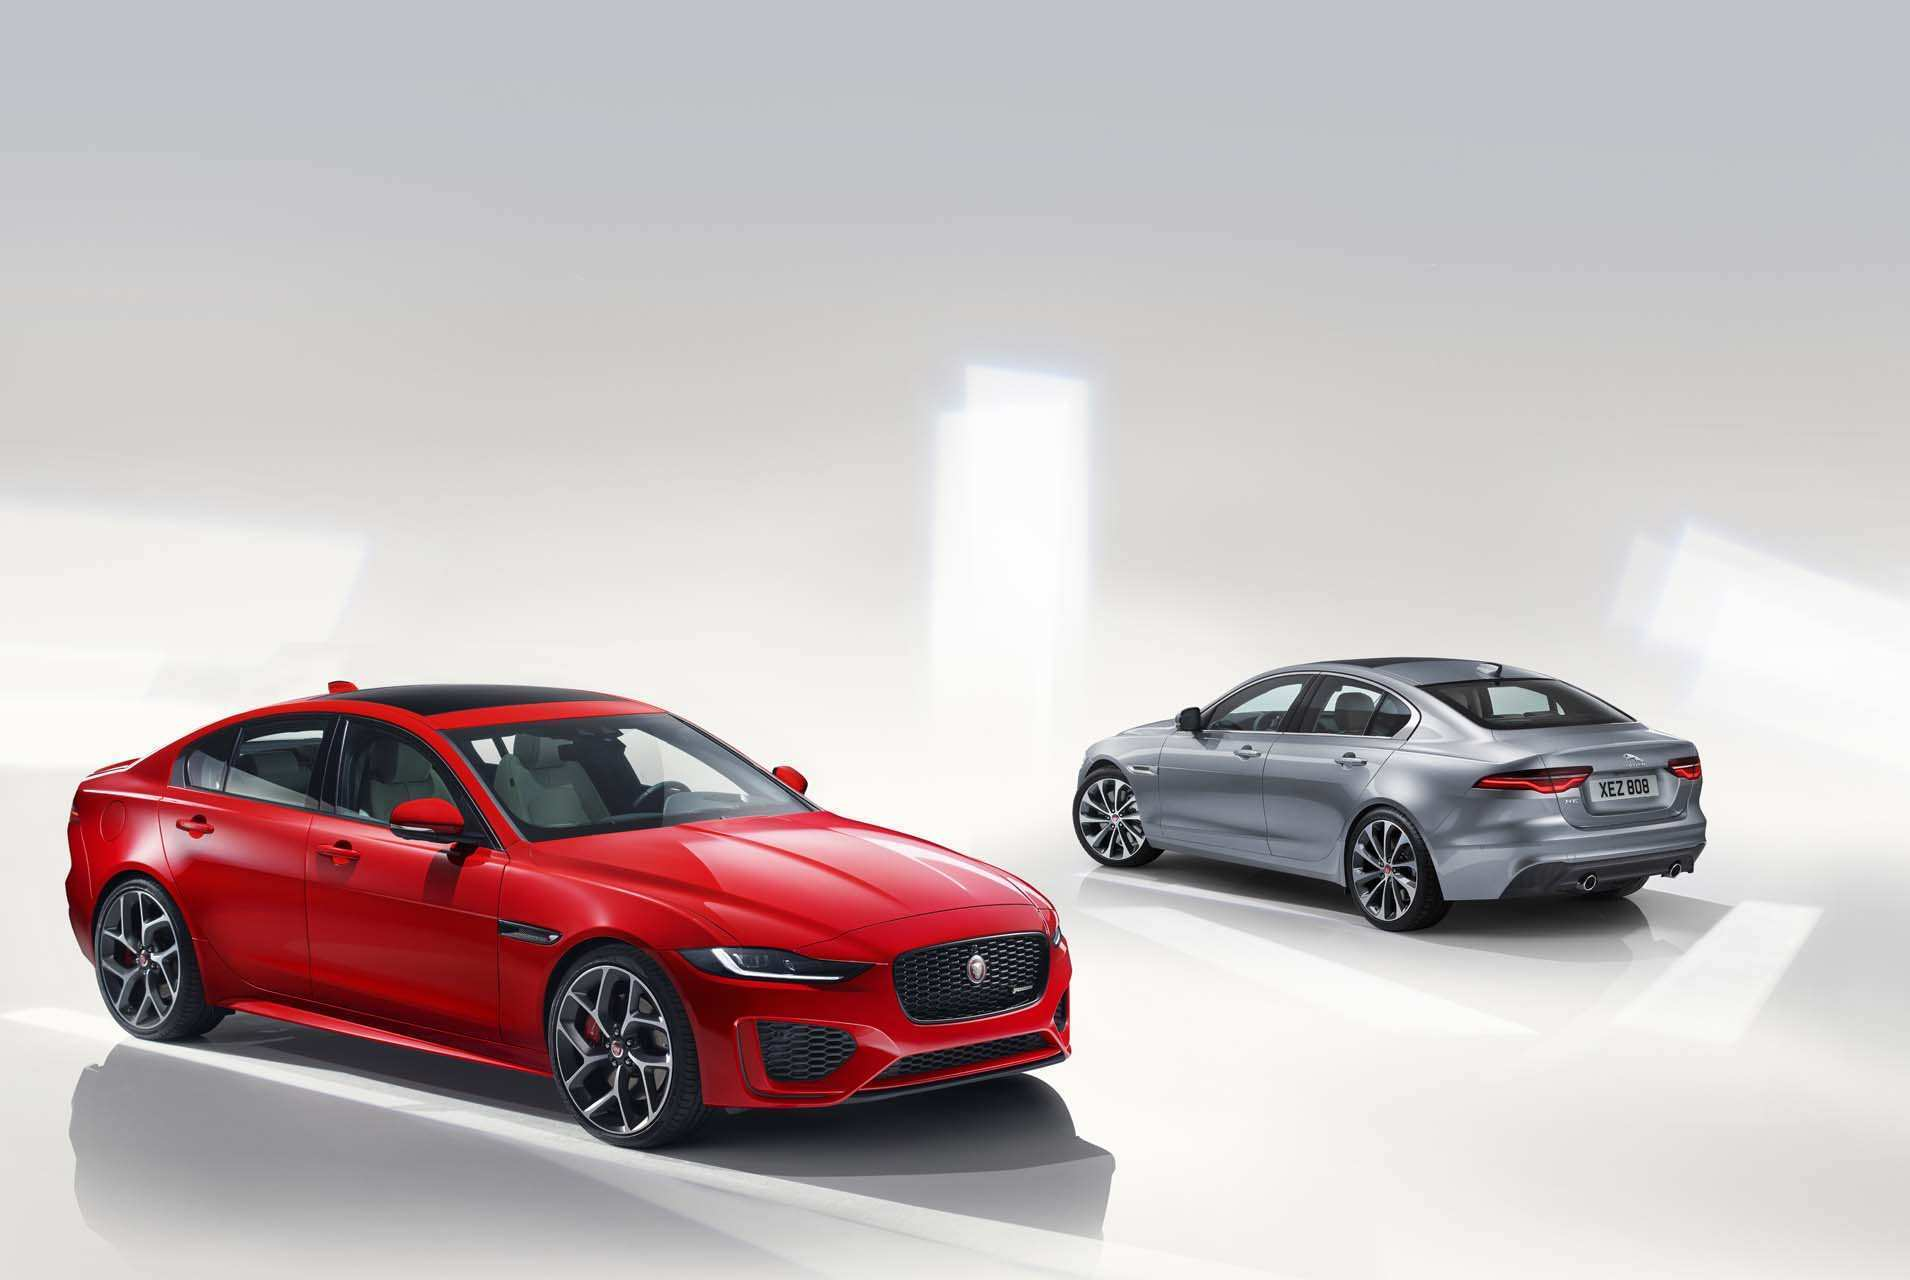 37 A 2020 Jaguar Xe Sedan Prices